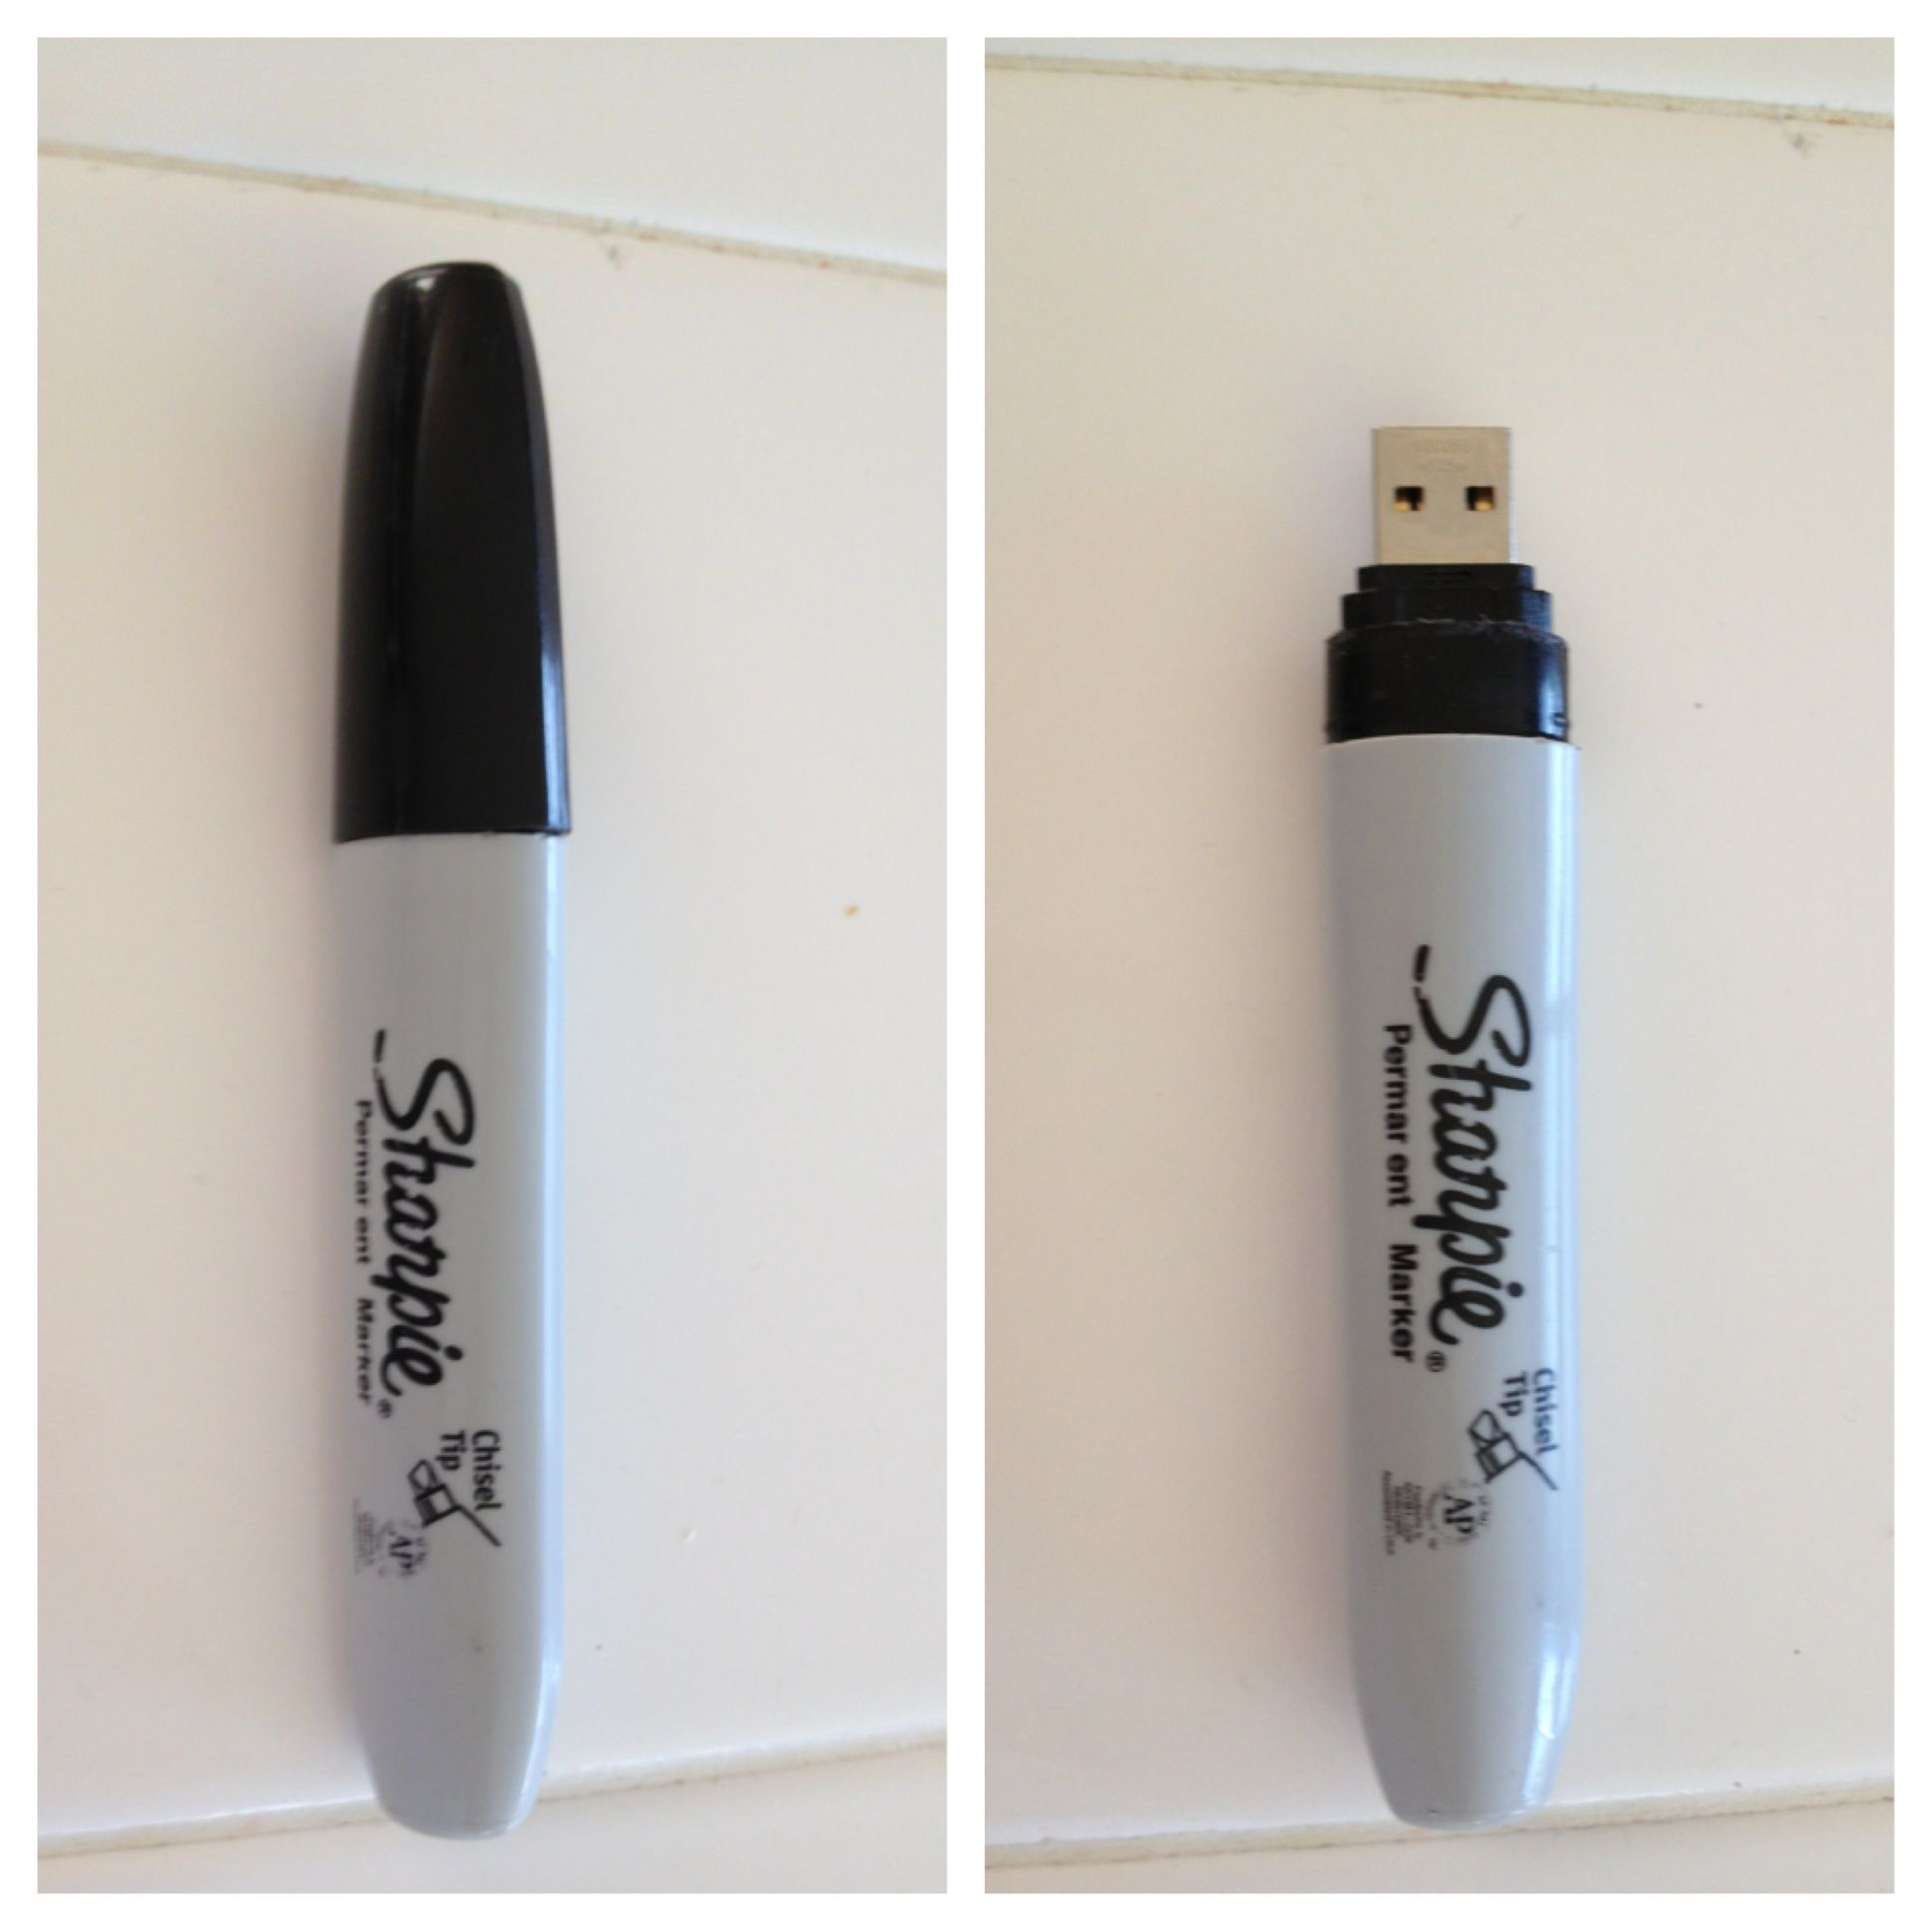 Diy usb flash drive holder easier to carry harder to